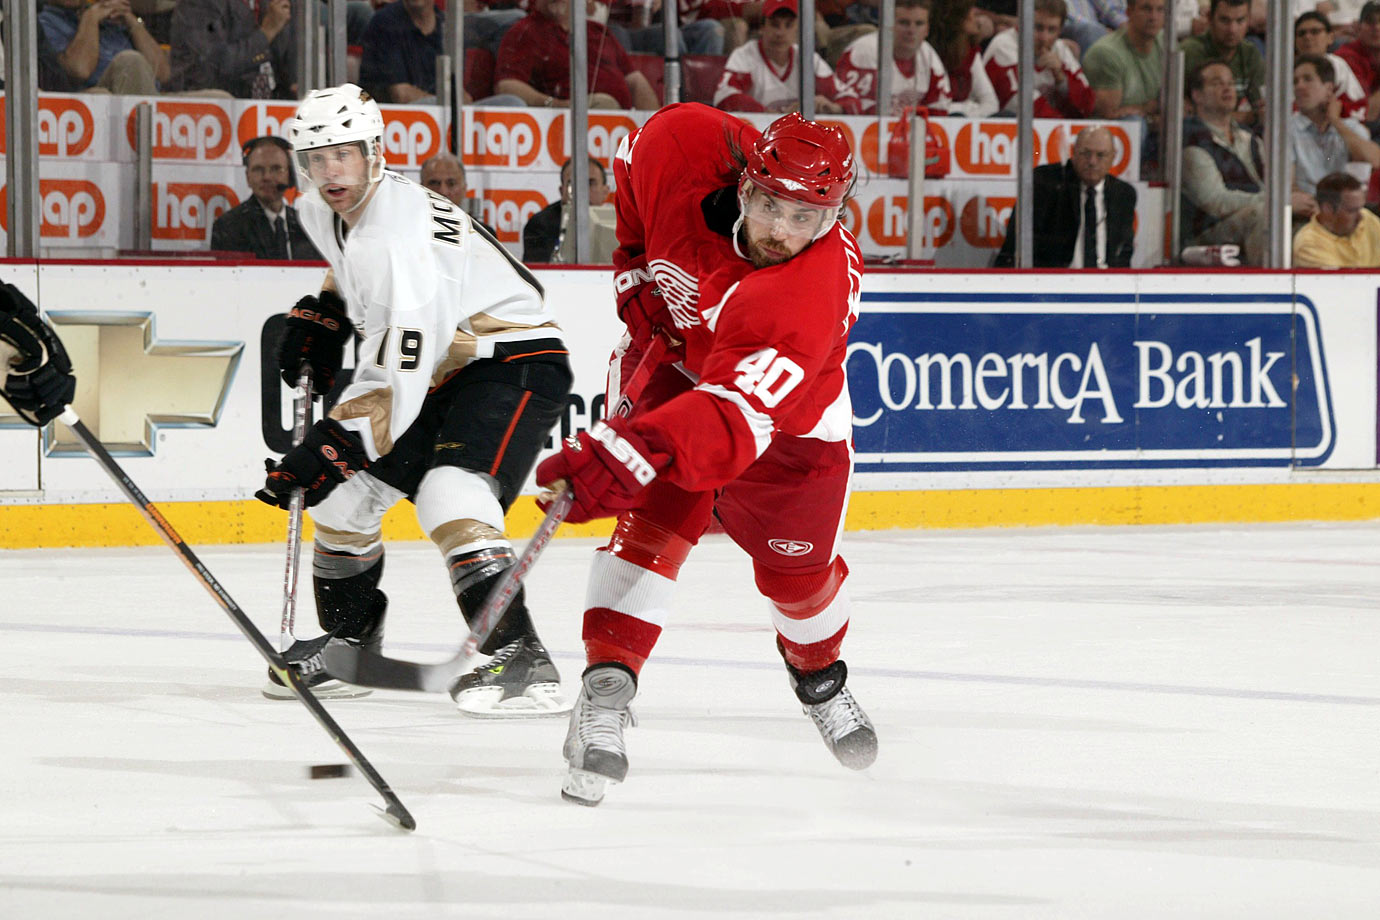 With Luc Robitaille holding onto 20, Hank decided to double the number he'd worn with Timra of the Swedish Elite League. He scored 43 goals and 92 points during Detroit's Cup-winning 2007-08 season.